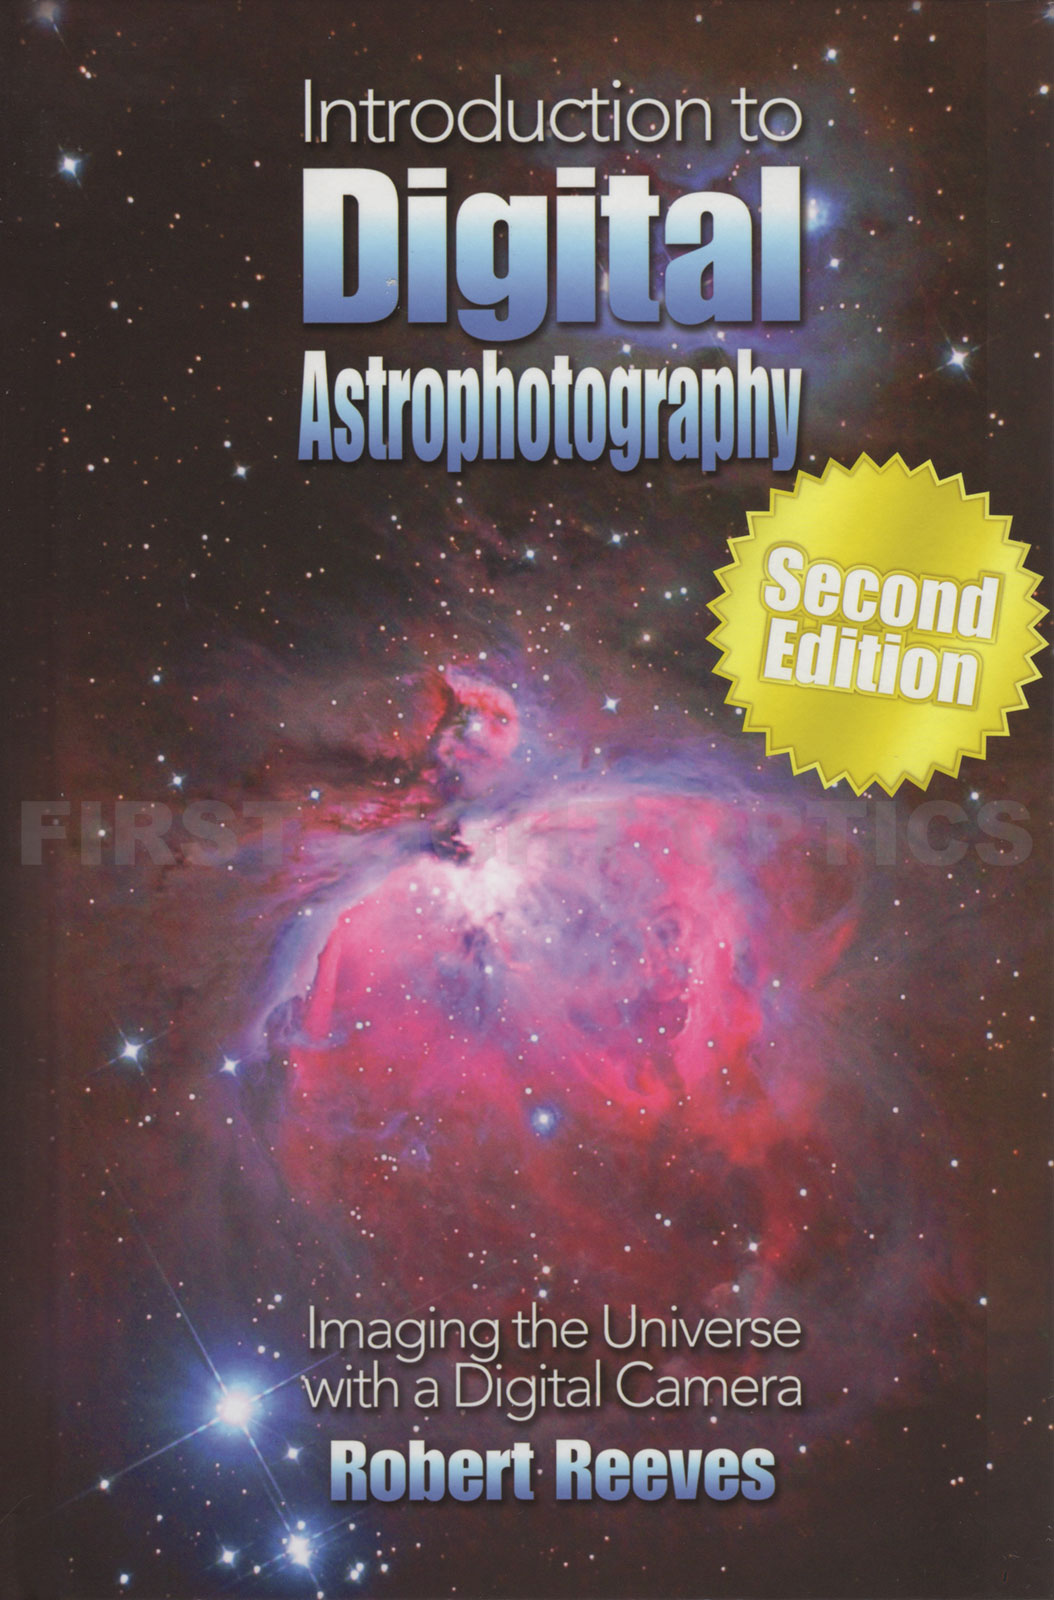 Introduction To Digital Astrophotography (Second Edition)